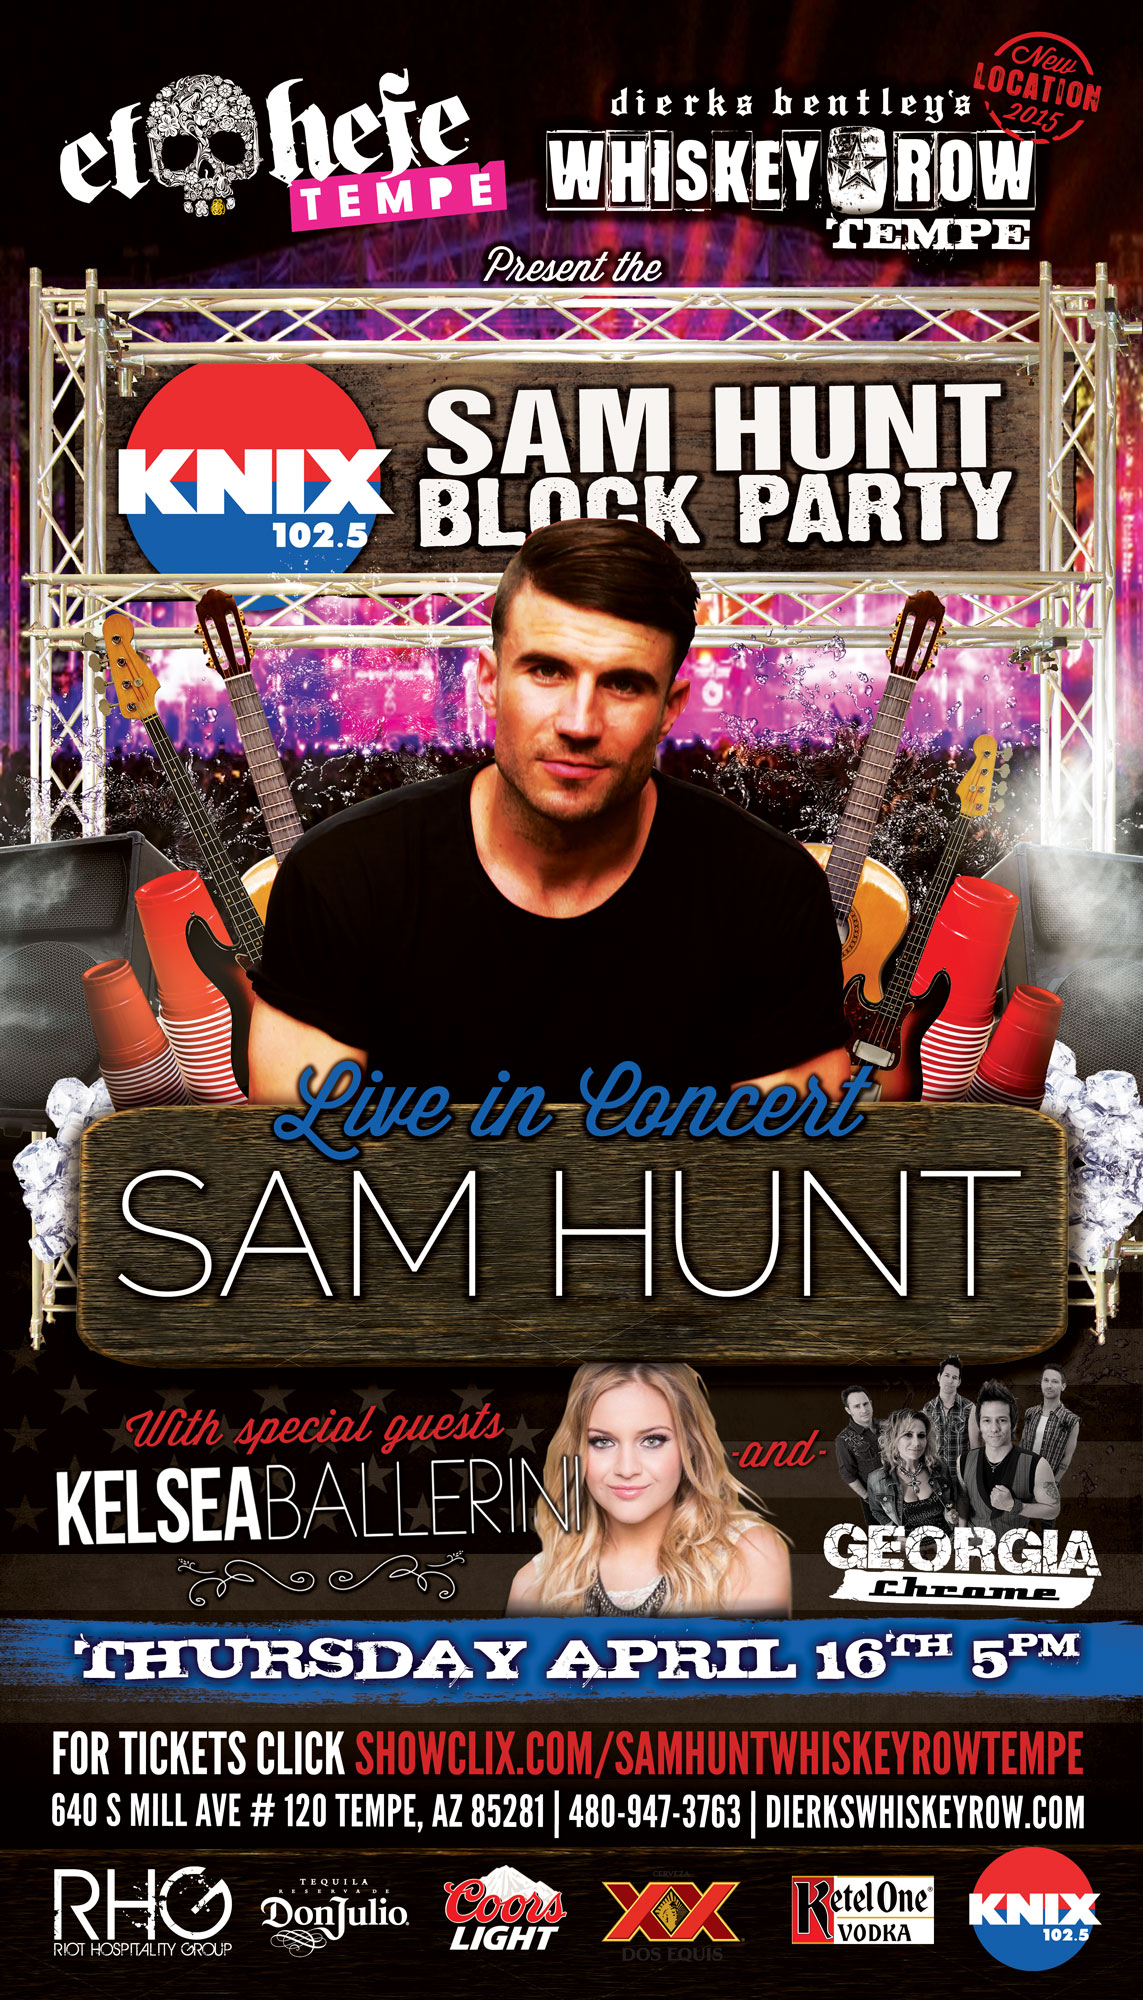 Tickets For Knix Sam Hunt Block Party In Tempe From Showclix